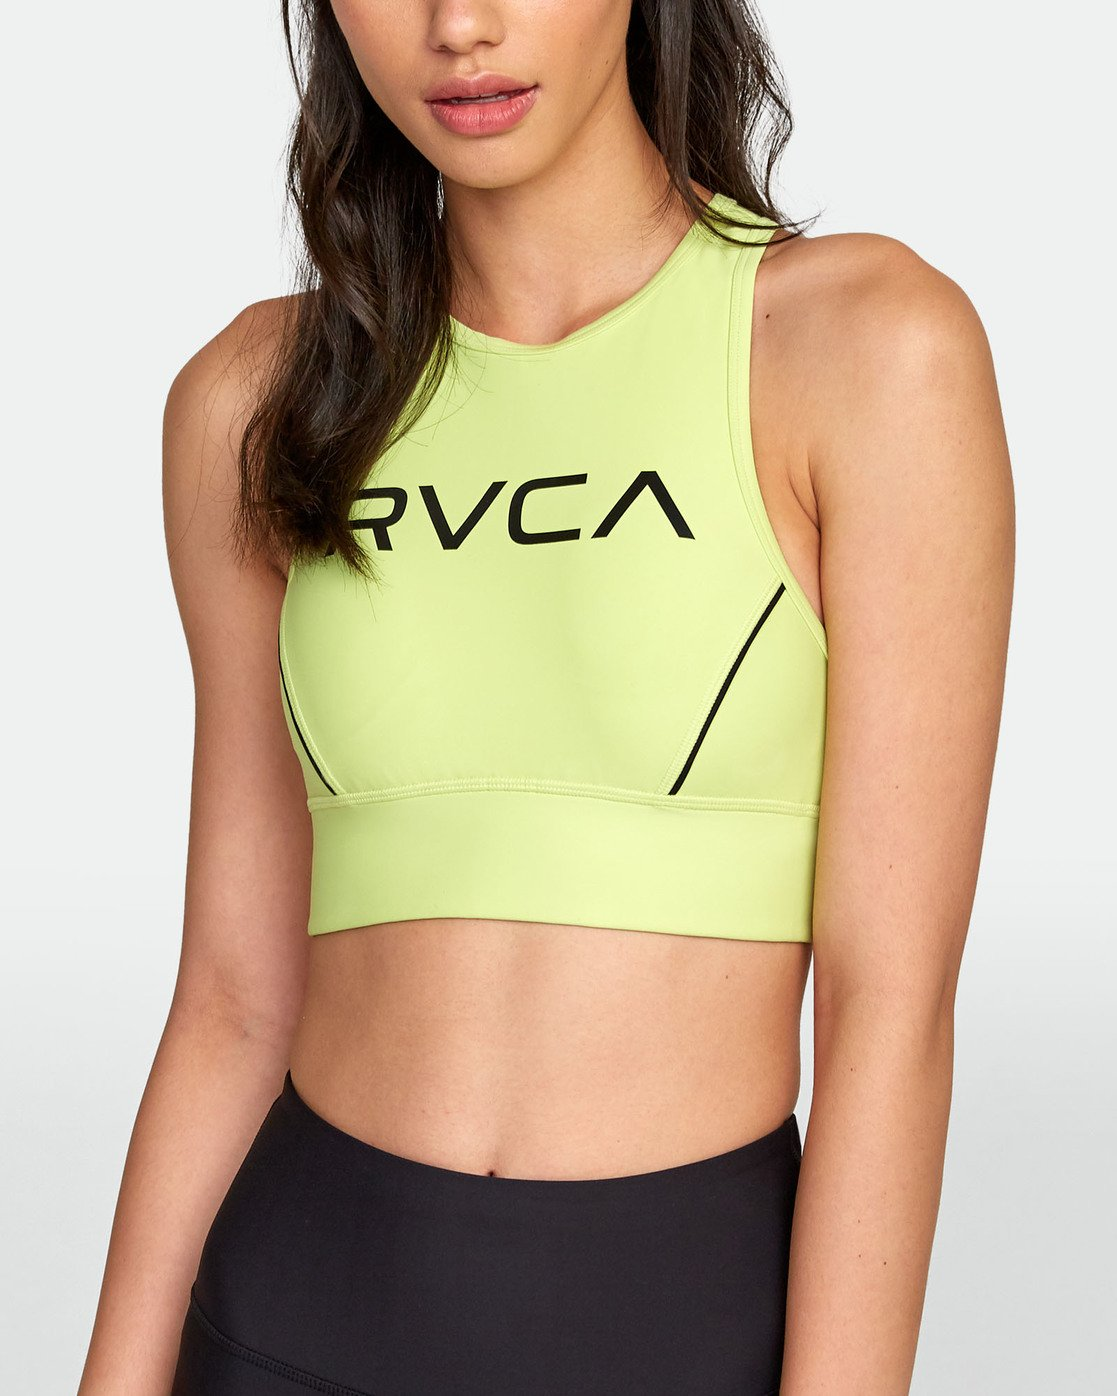 5 VA Longline Bra Ii - Sports Bra / Athletic Top for Women  S4UNWBRVP0 RVCA